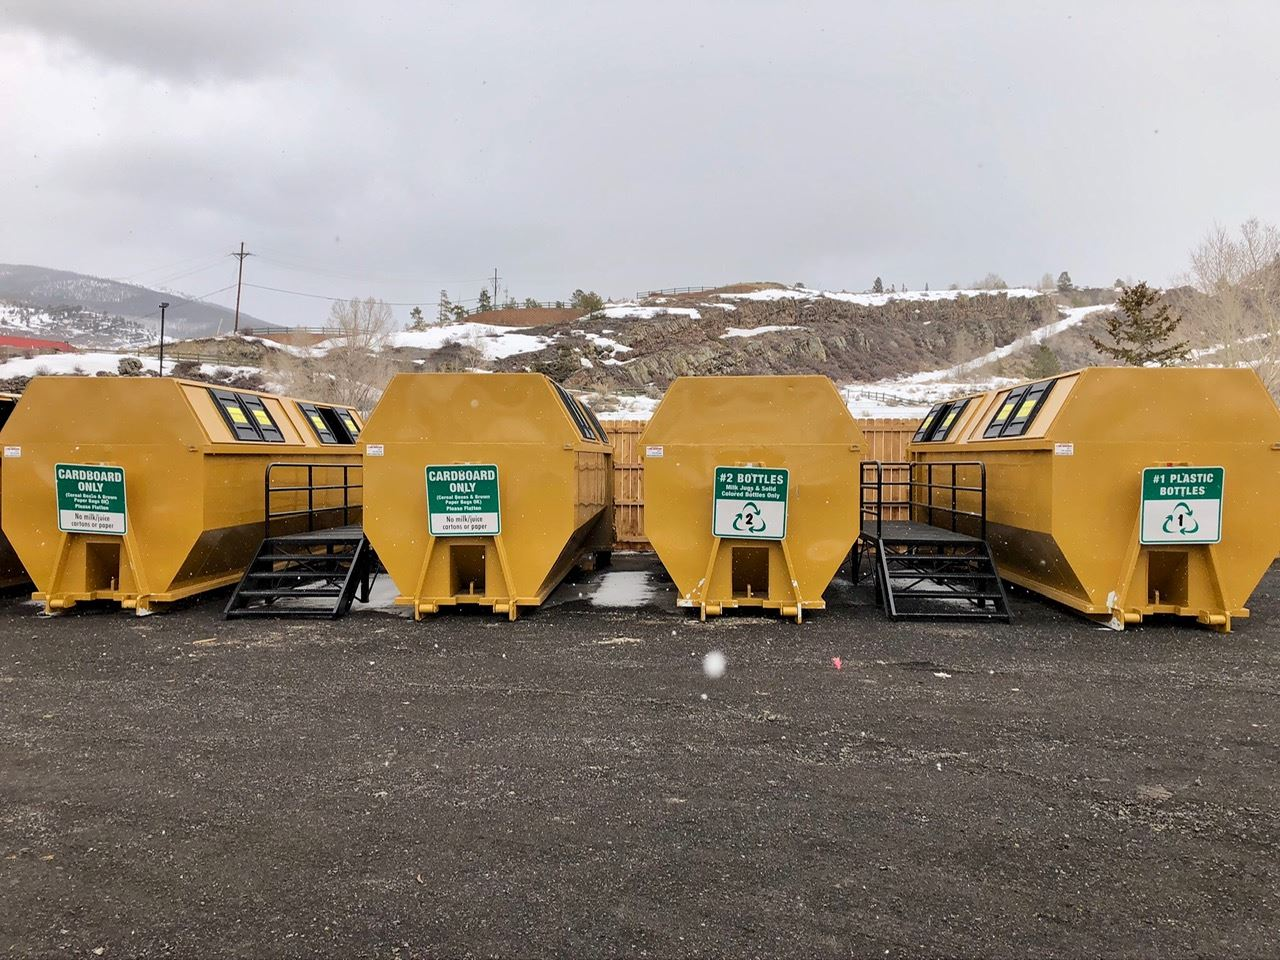 Containers for cardboard and plastic at the Silverthorne Recycling Center.